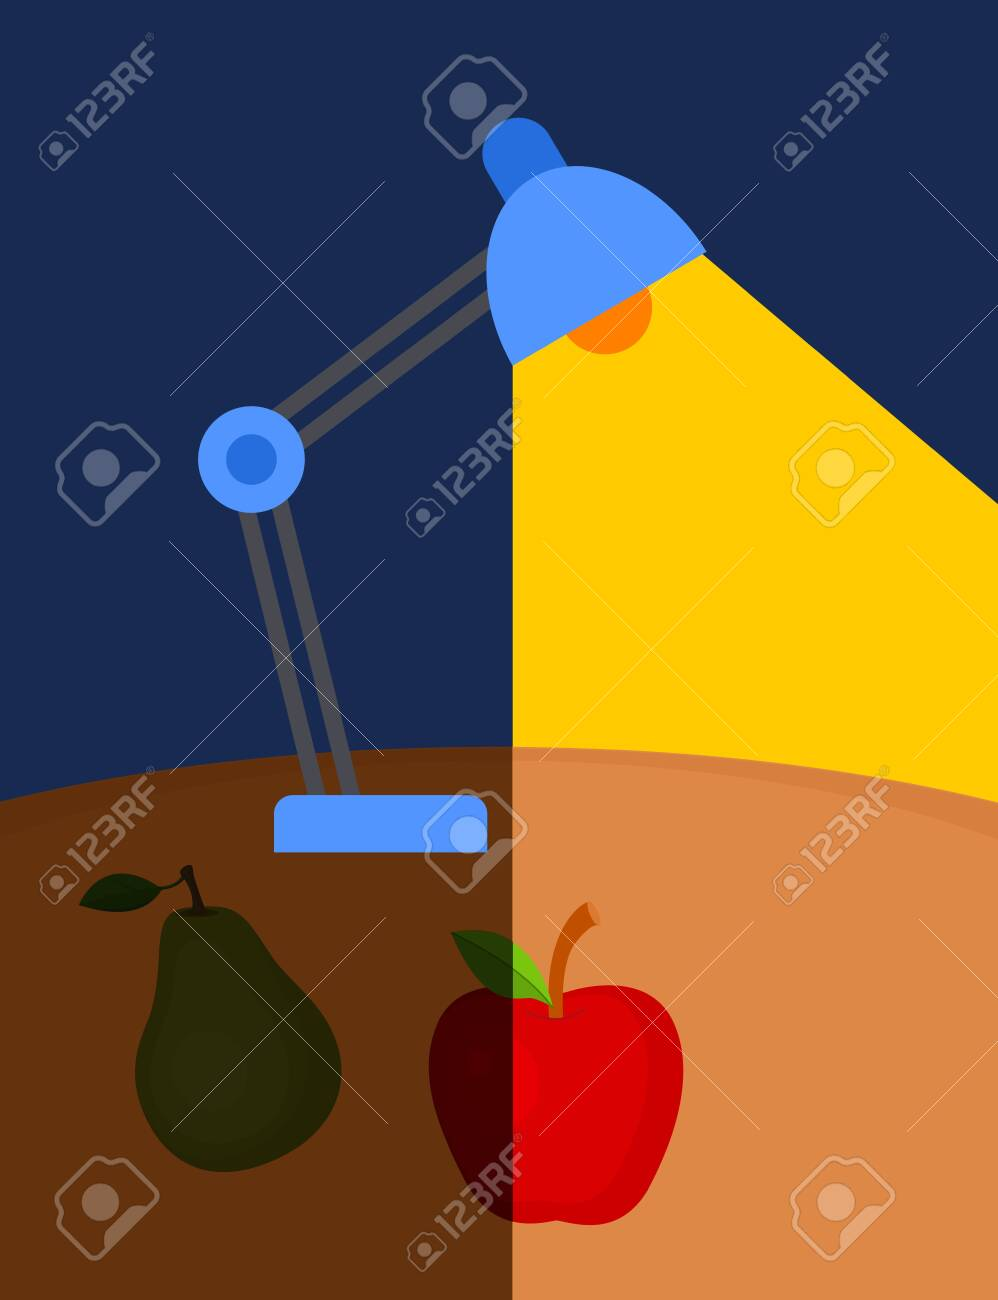 Vector illustration of lamp lighting at the table with apple and pear - 130346799